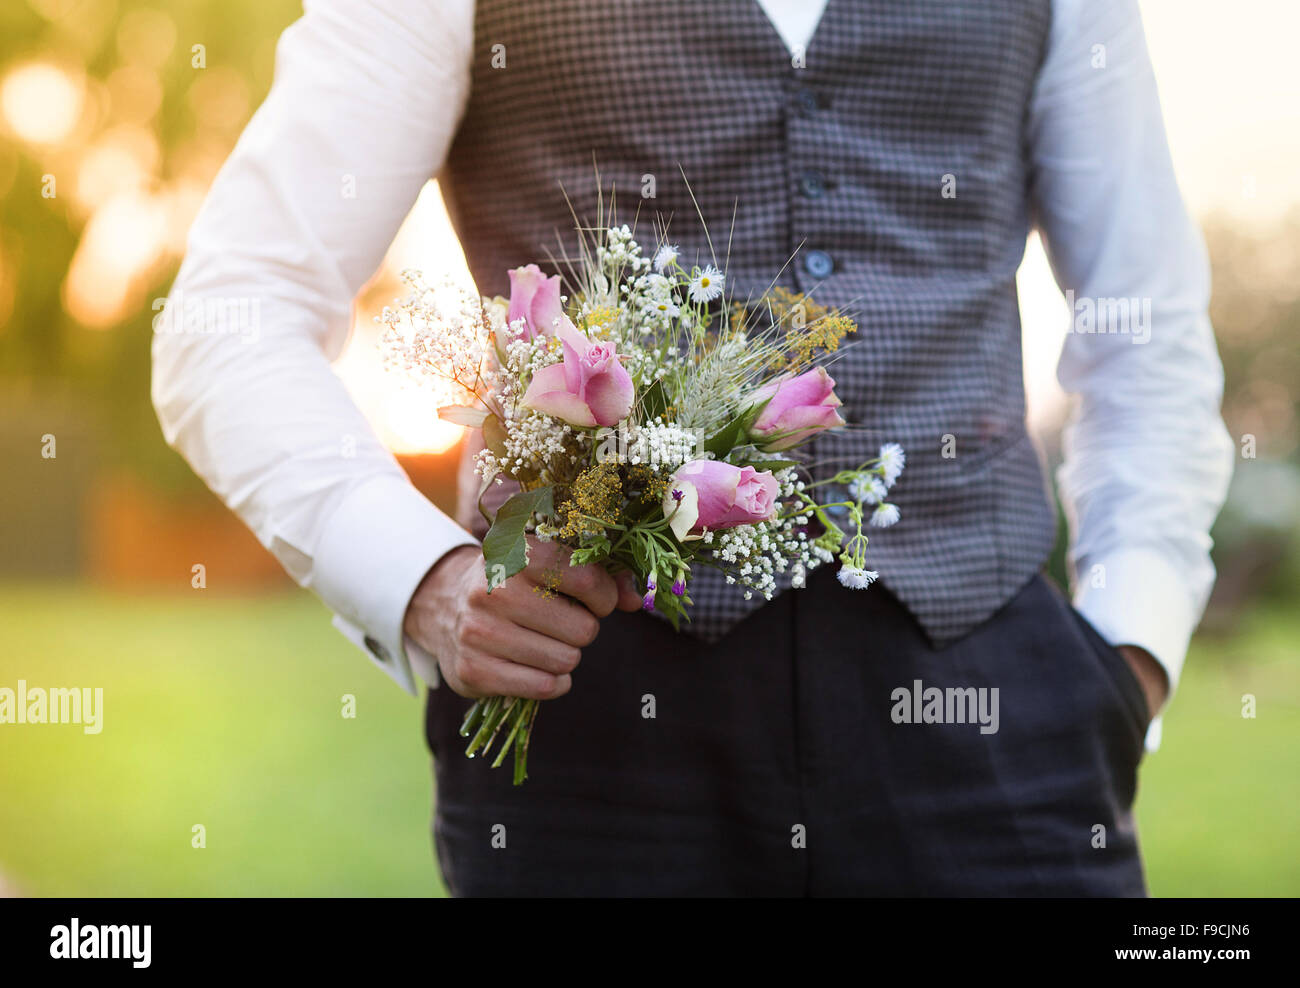 Part of the groom holding wedding bouquet in hand - Stock Image